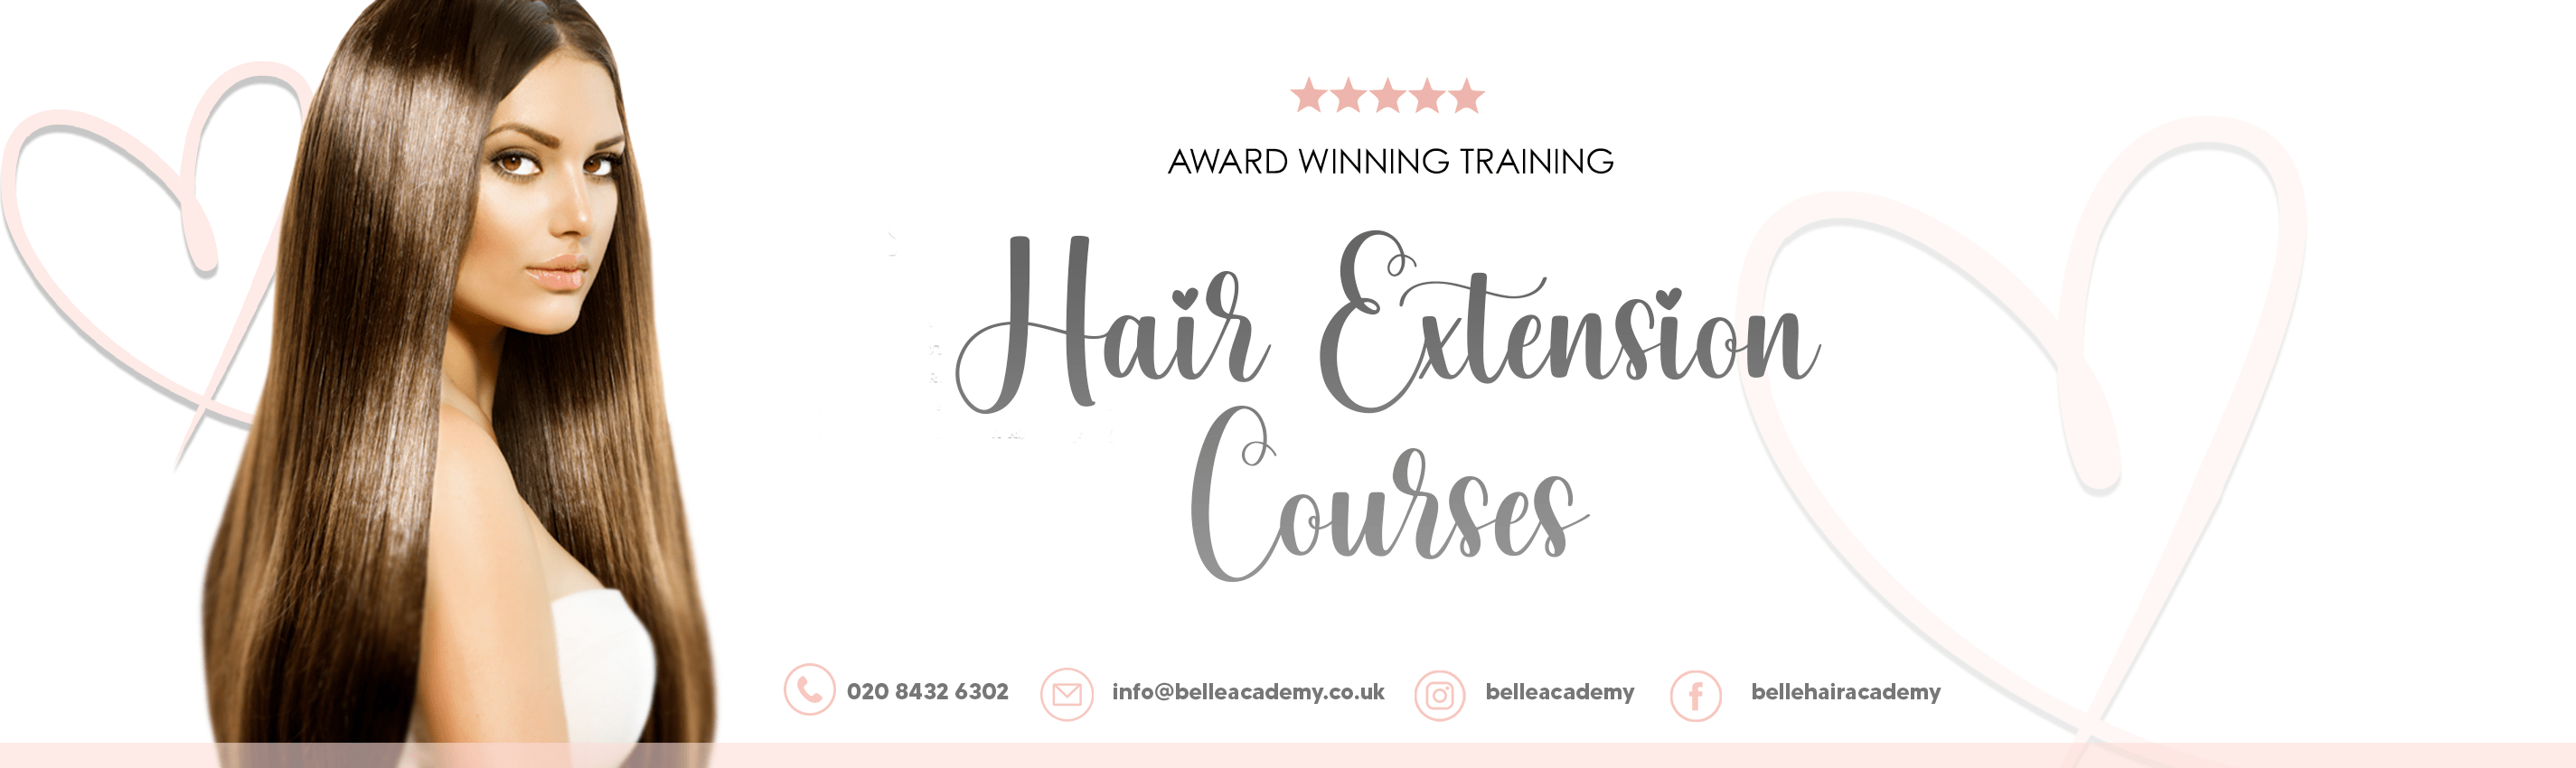 Belle Academy Hair Course